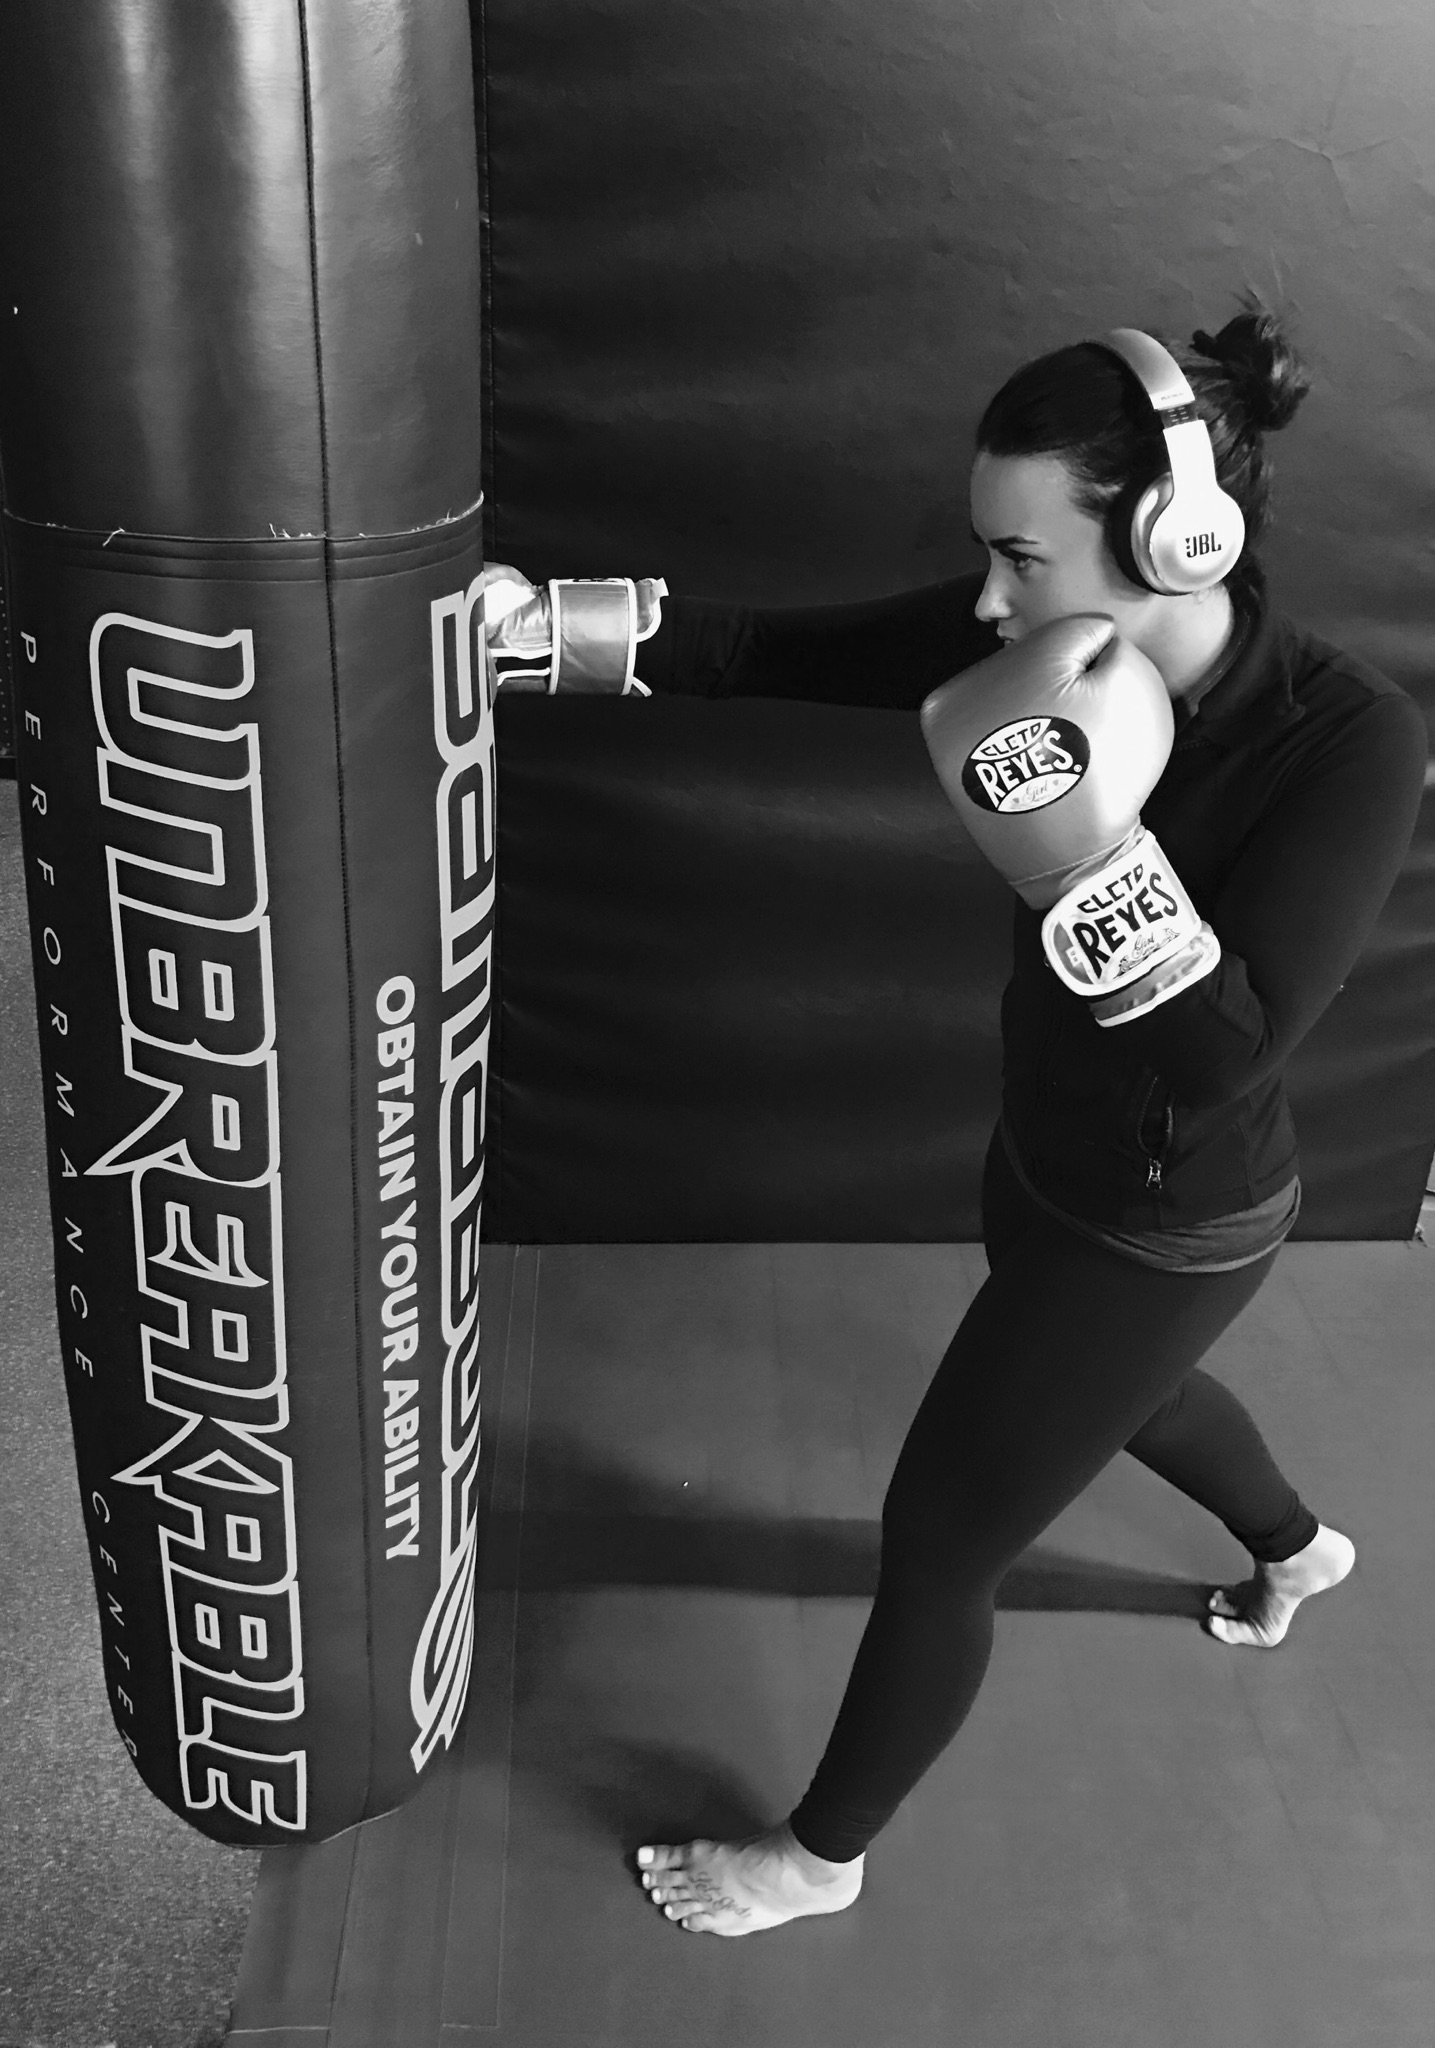 My kind of Grammy prep �� @Unbreakable x @JBLaudio #JBLxDemi https://t.co/0AUgtokmw2